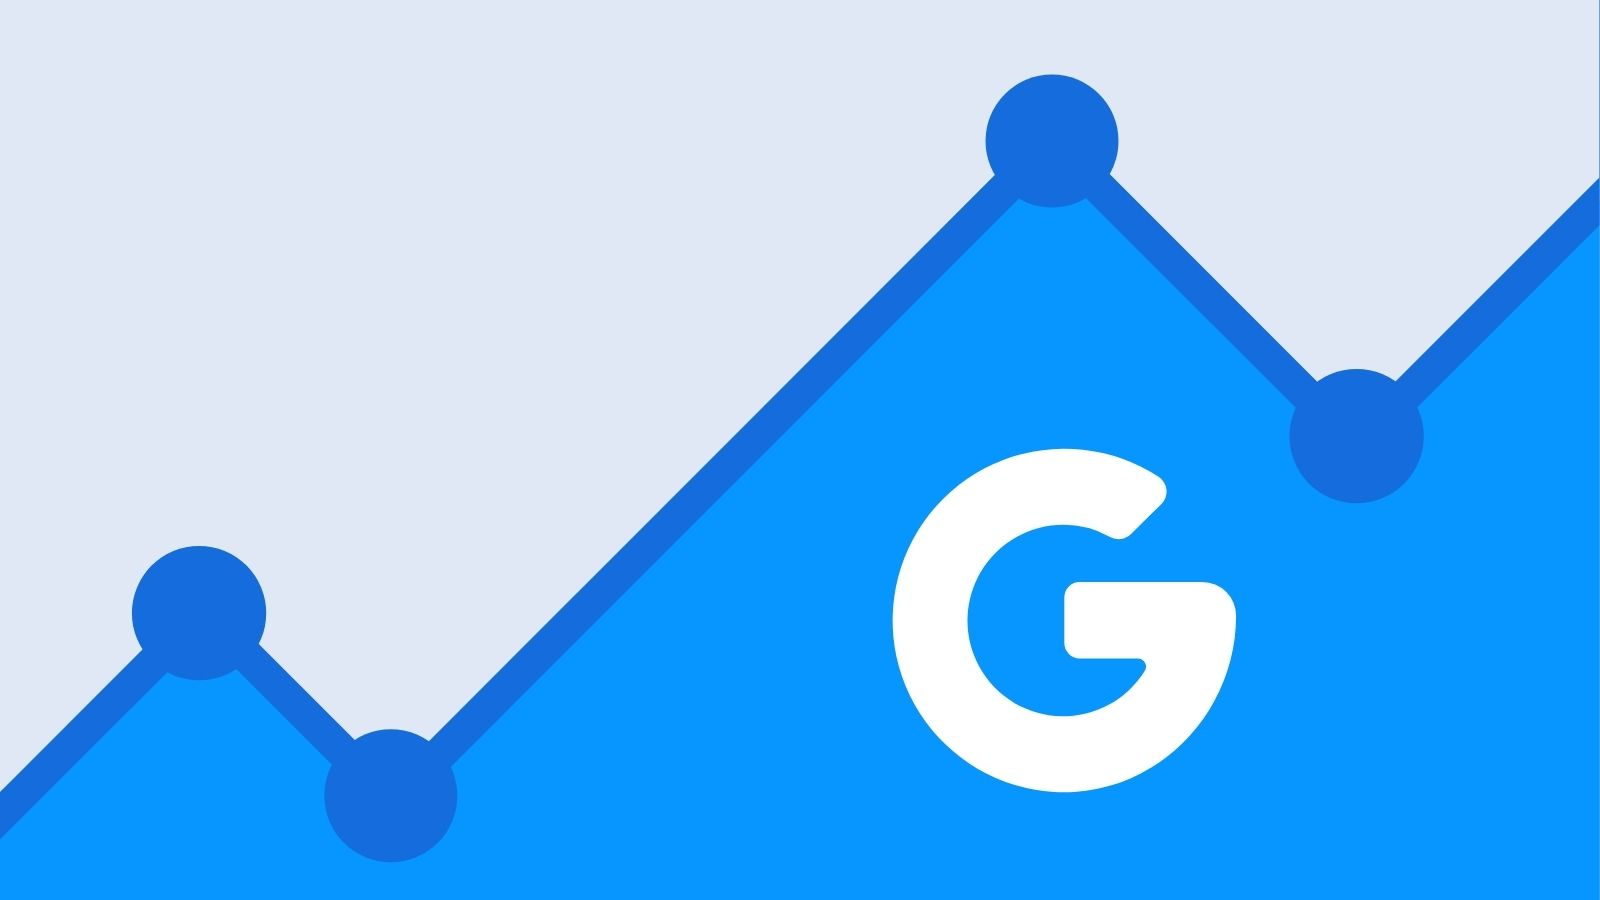 google stock target price and forecast